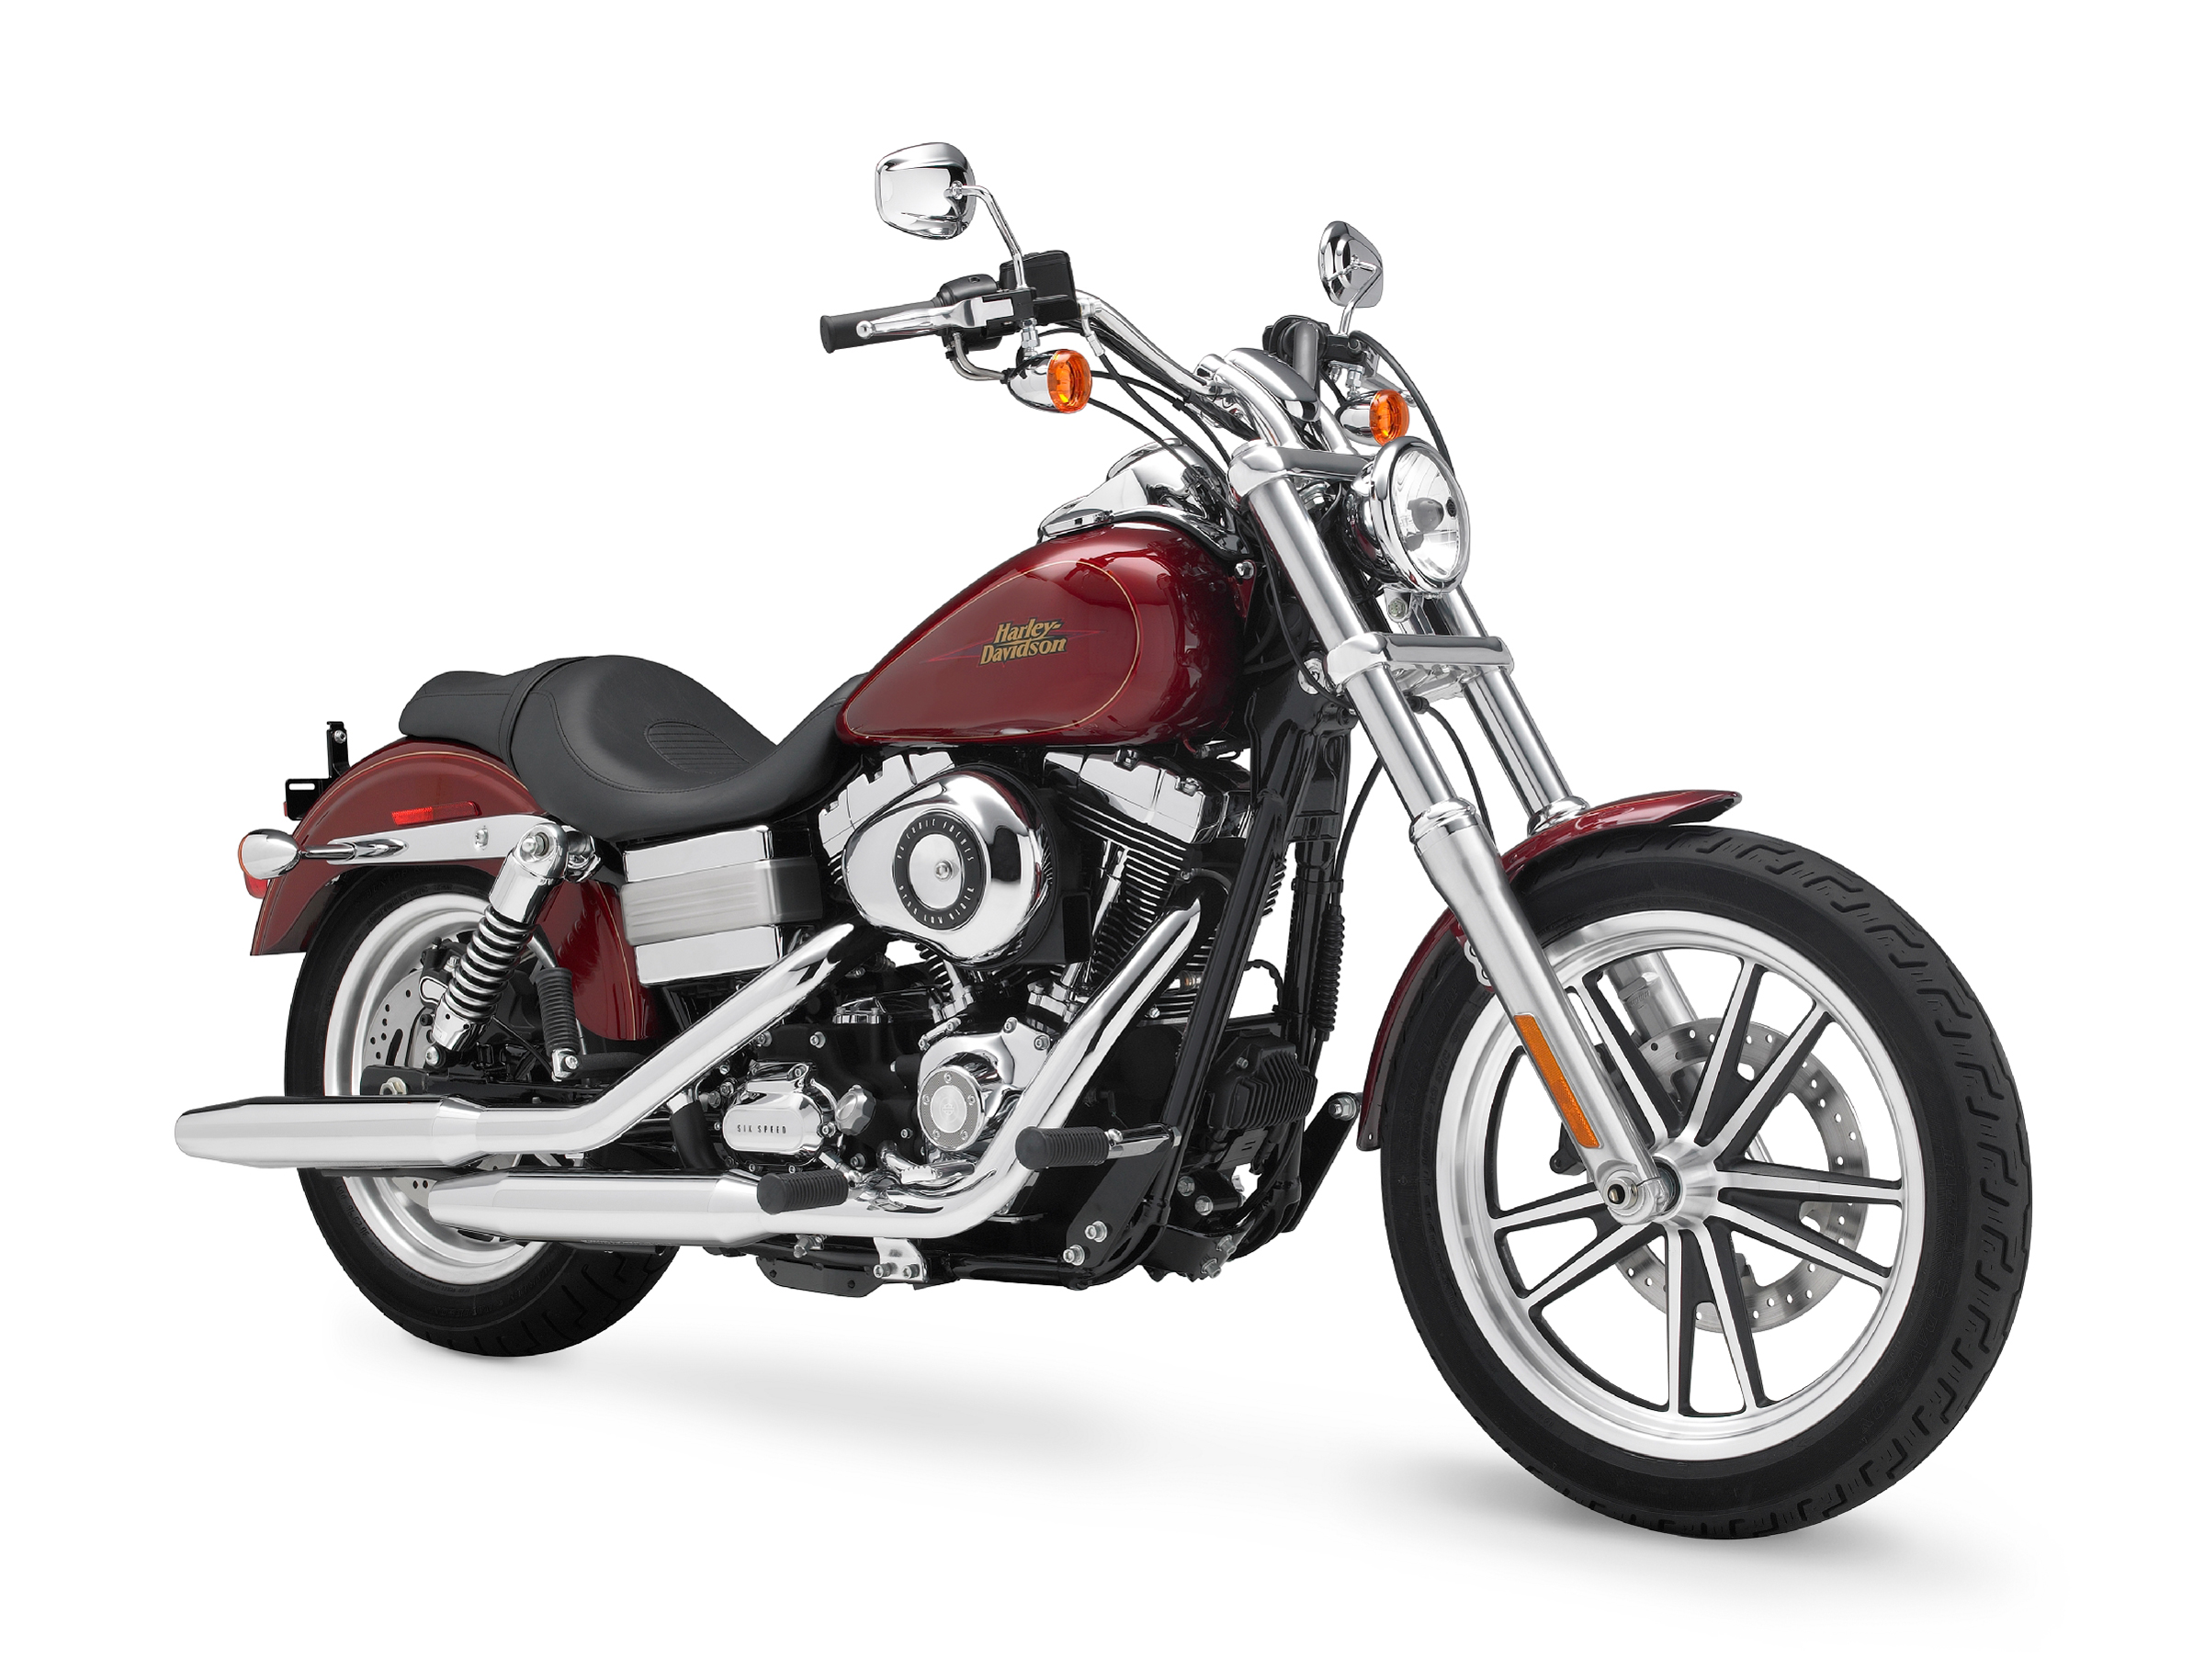 2009 Harley-Davidson FXDL Dyna Low Rider | Top Speed